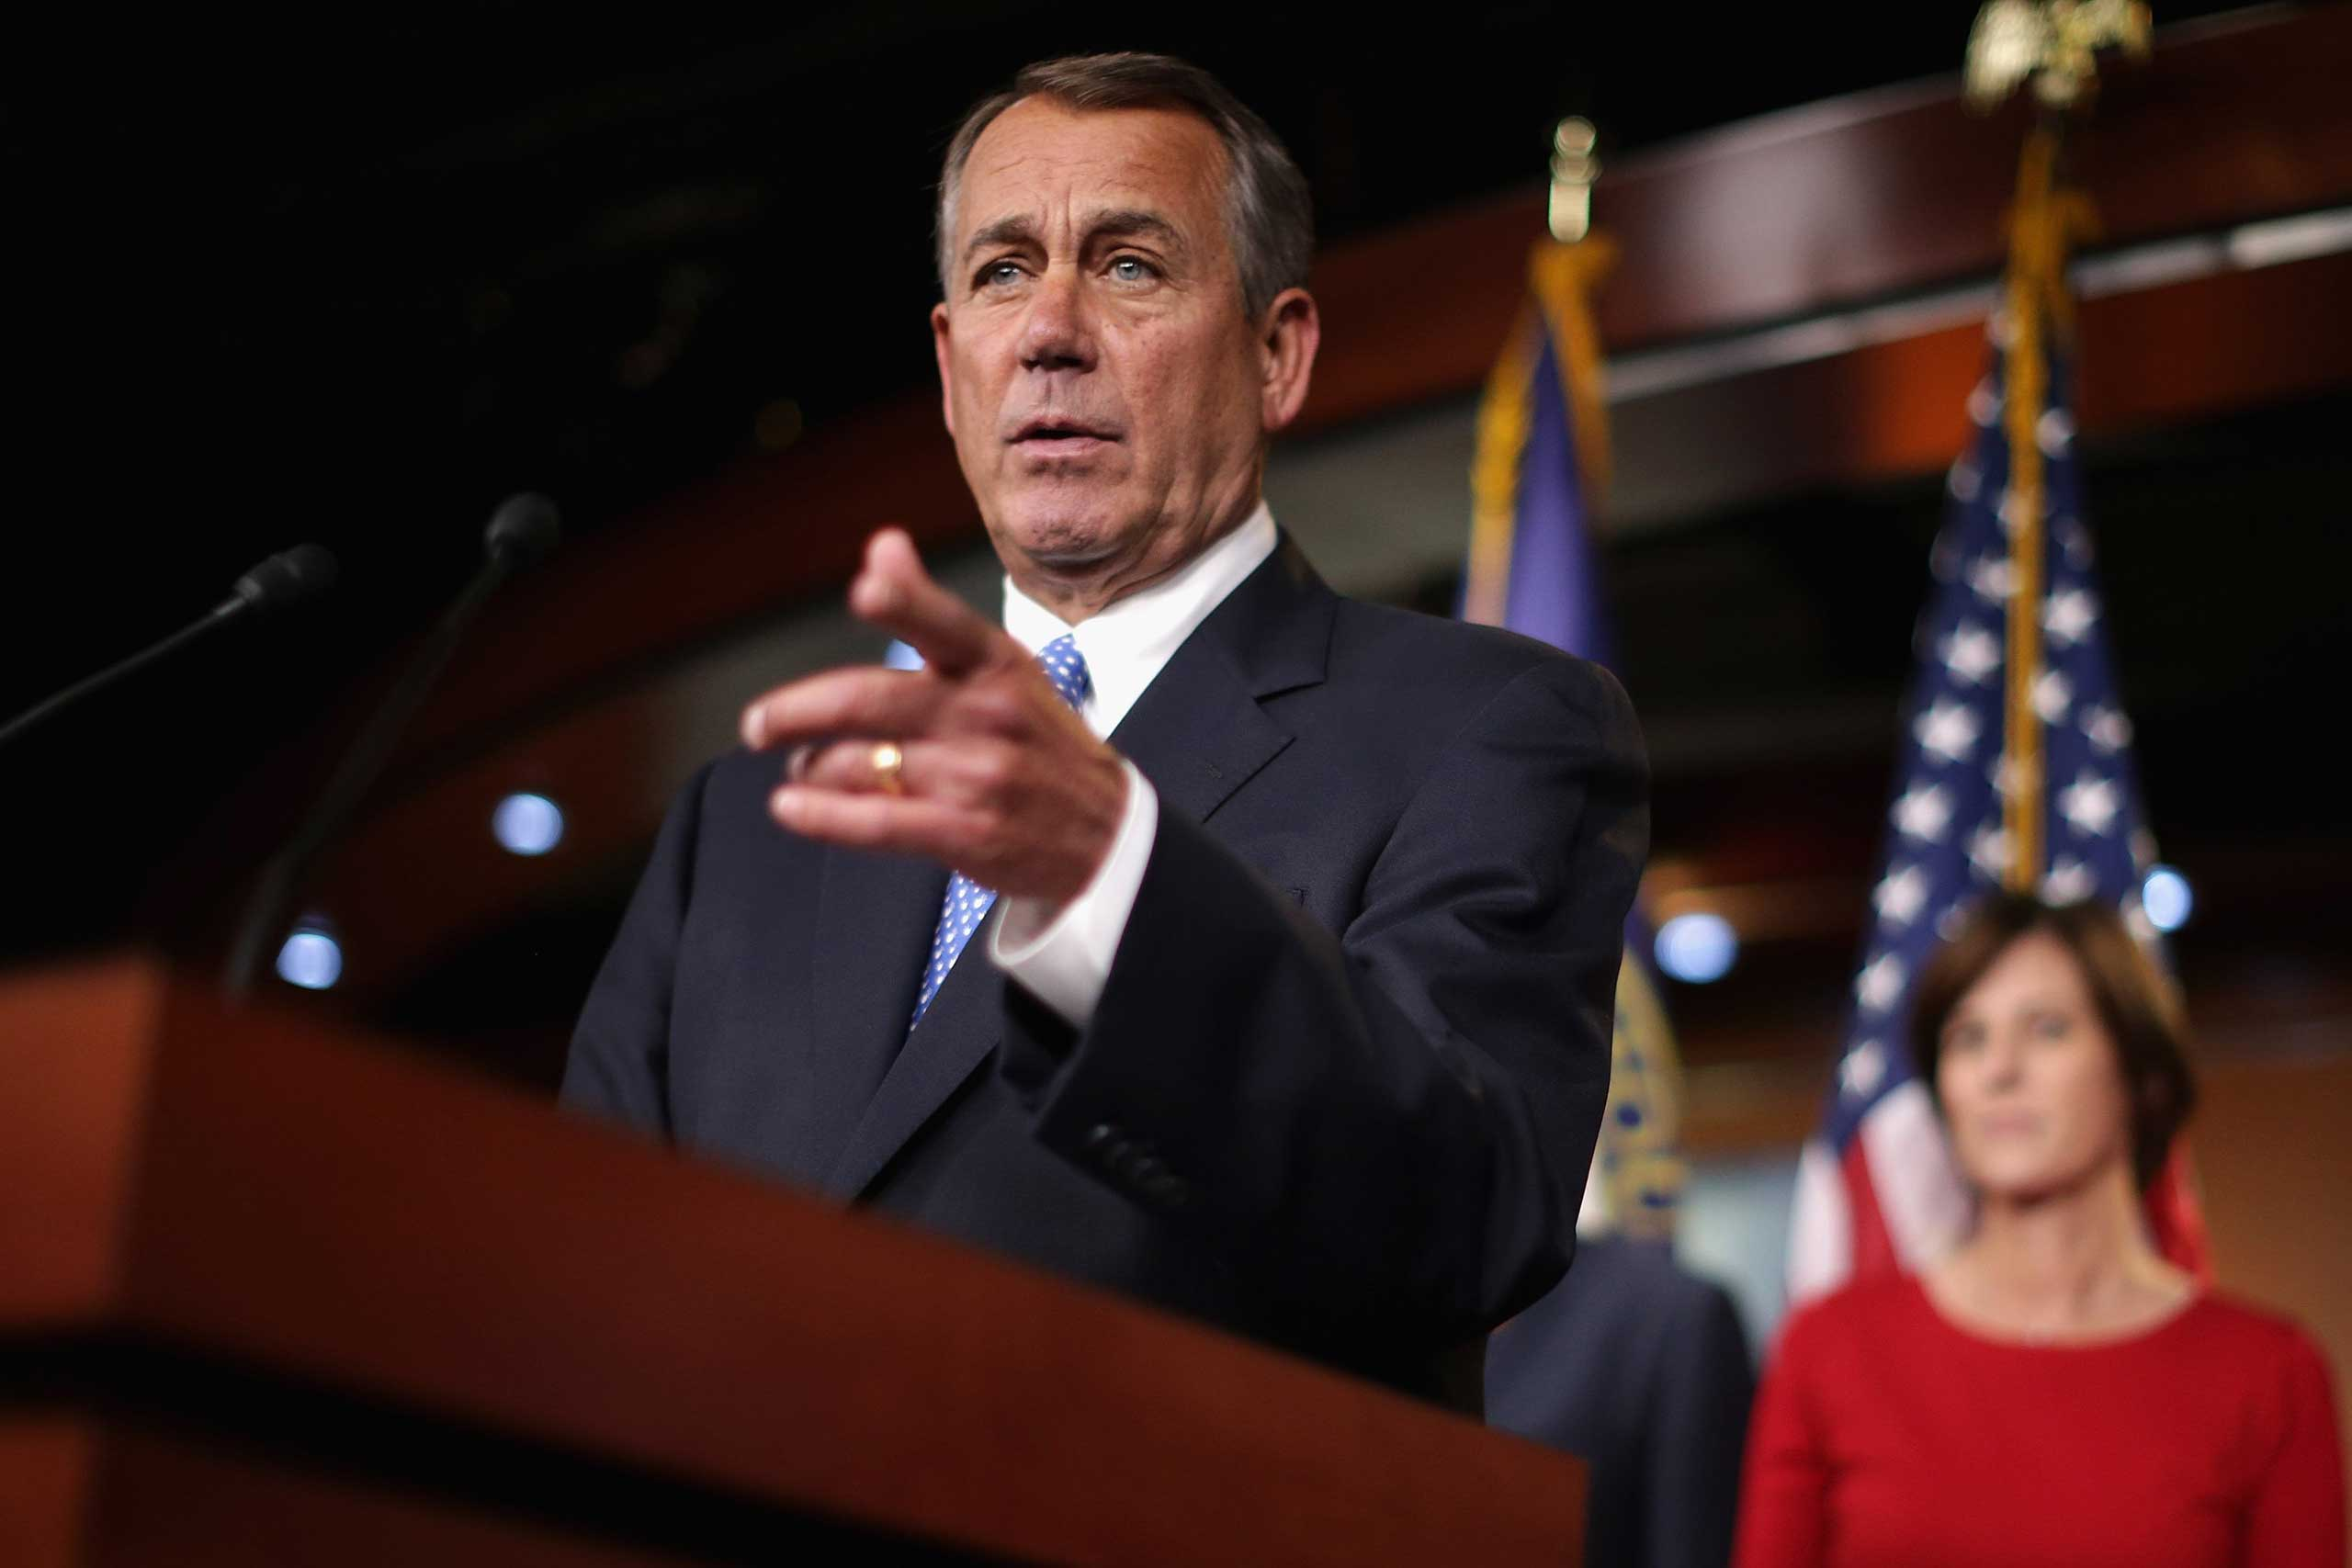 Speaker of the House John Boehner (R-OH) holds a news conference with the newly-elected members of the House GOP leadership at the U.S. Capitol in Washington on Nov. 13, 2014.